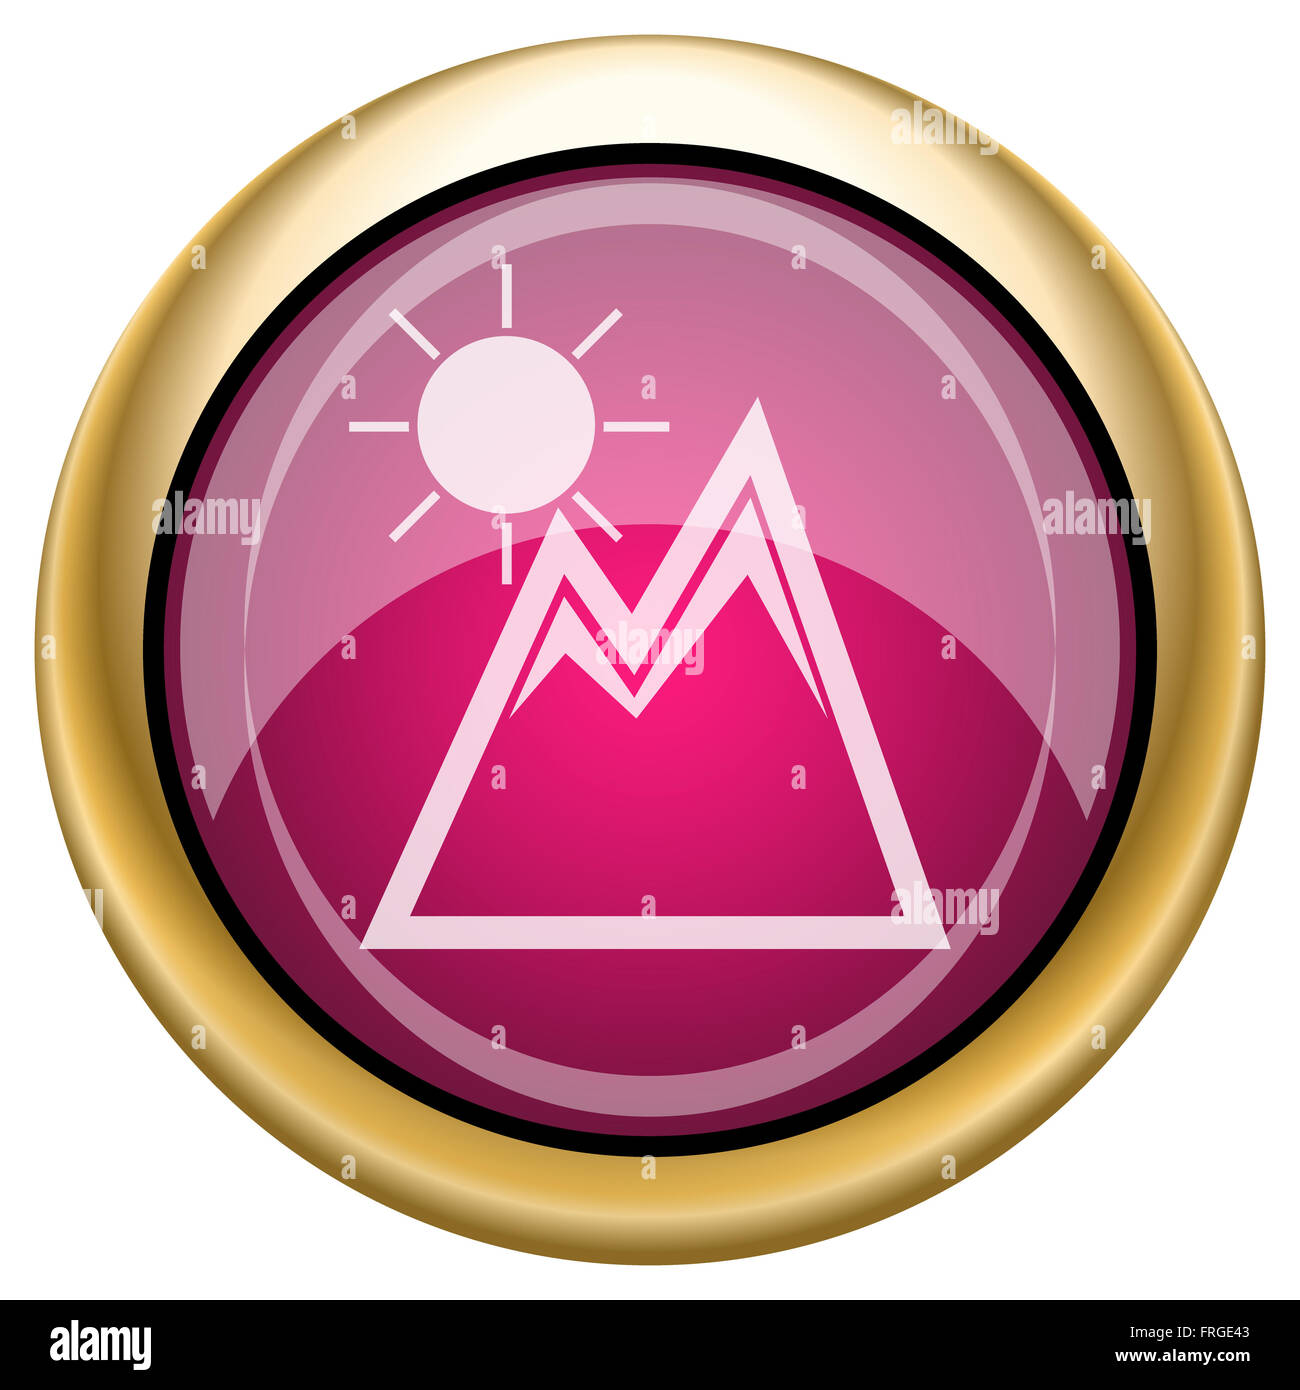 Shiny glossy icon with white design on magenta and gold background - Stock Image